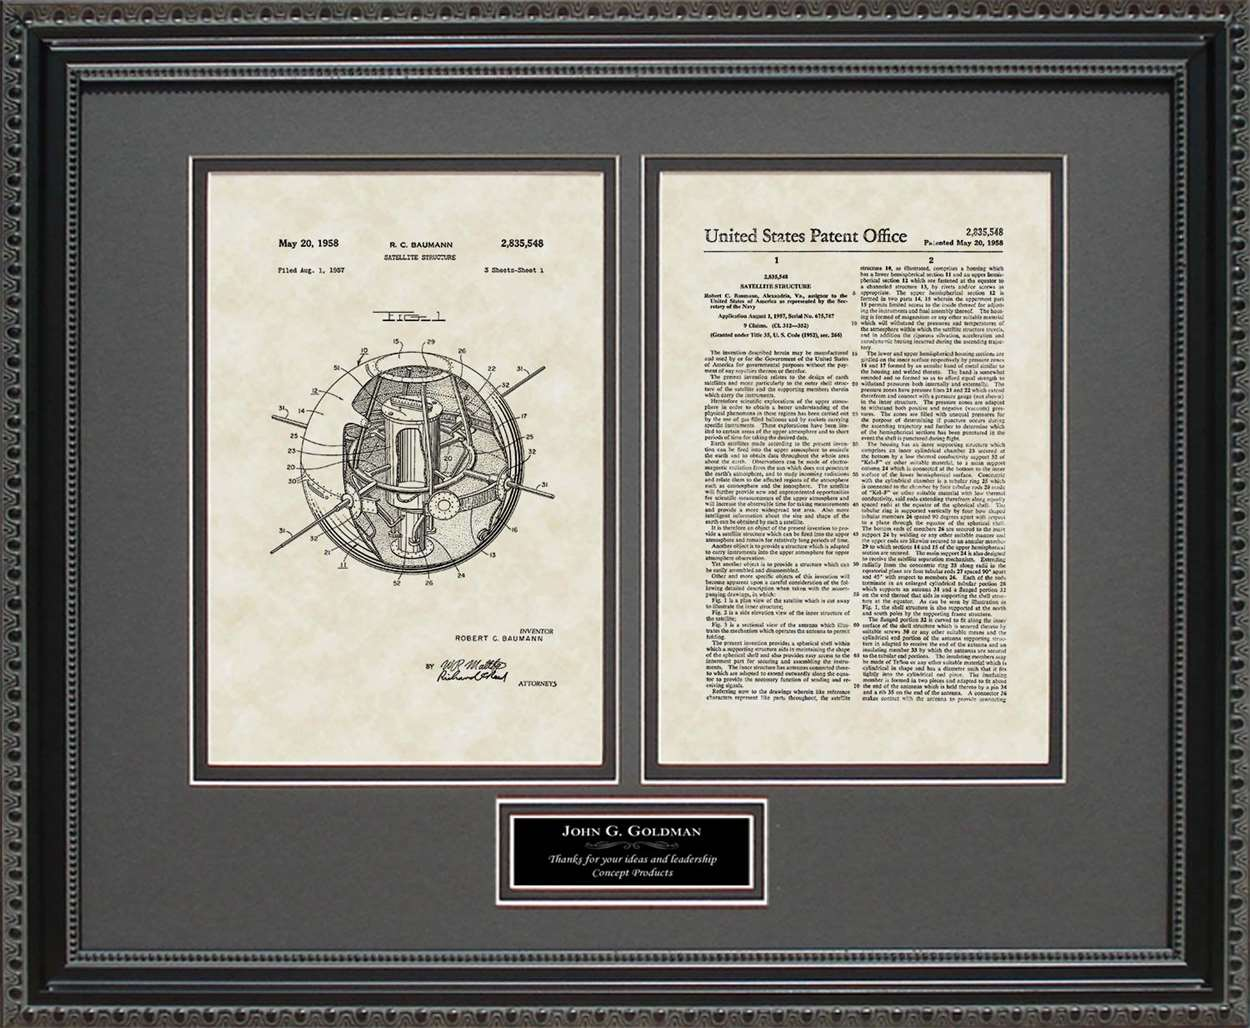 Personalized Satellite Patent, Art & Copy, Bauman, 1958